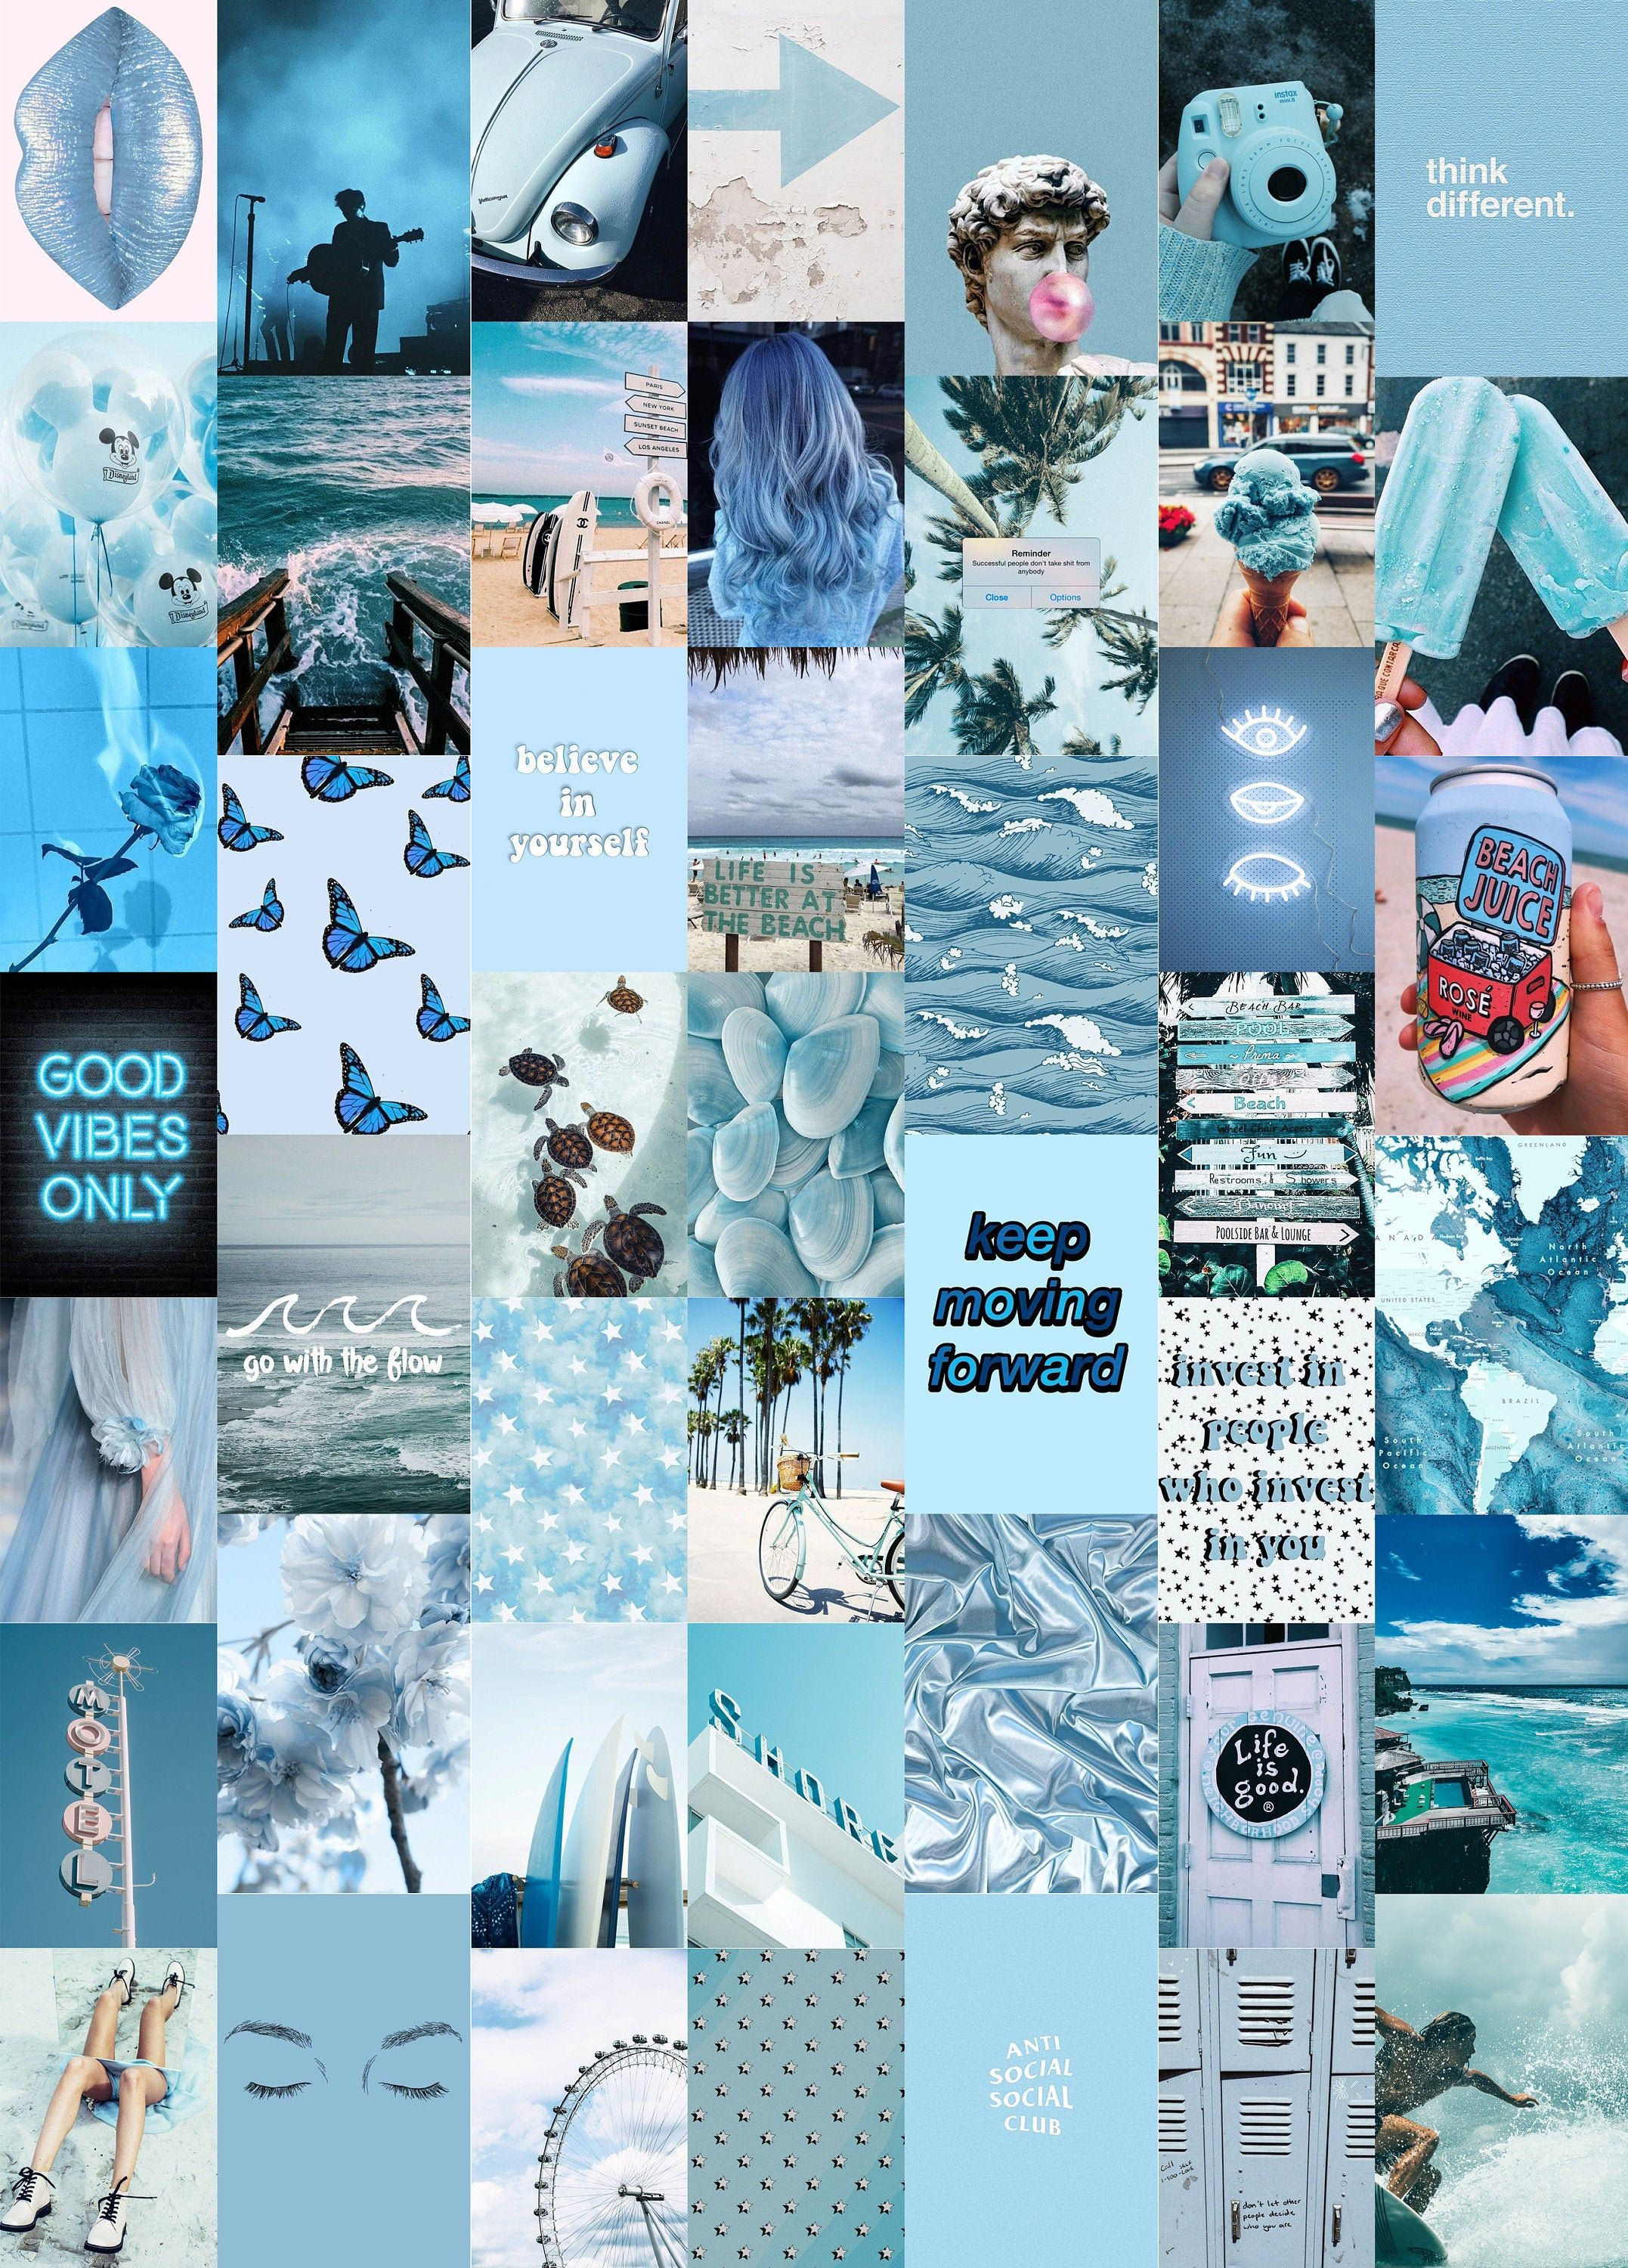 Ocean Blues Wall Collage Kit (Digital Download), Photo Wall Collage, Aesthetic Collage Kit, Boujee Wall Collage, Dorm Room Decor